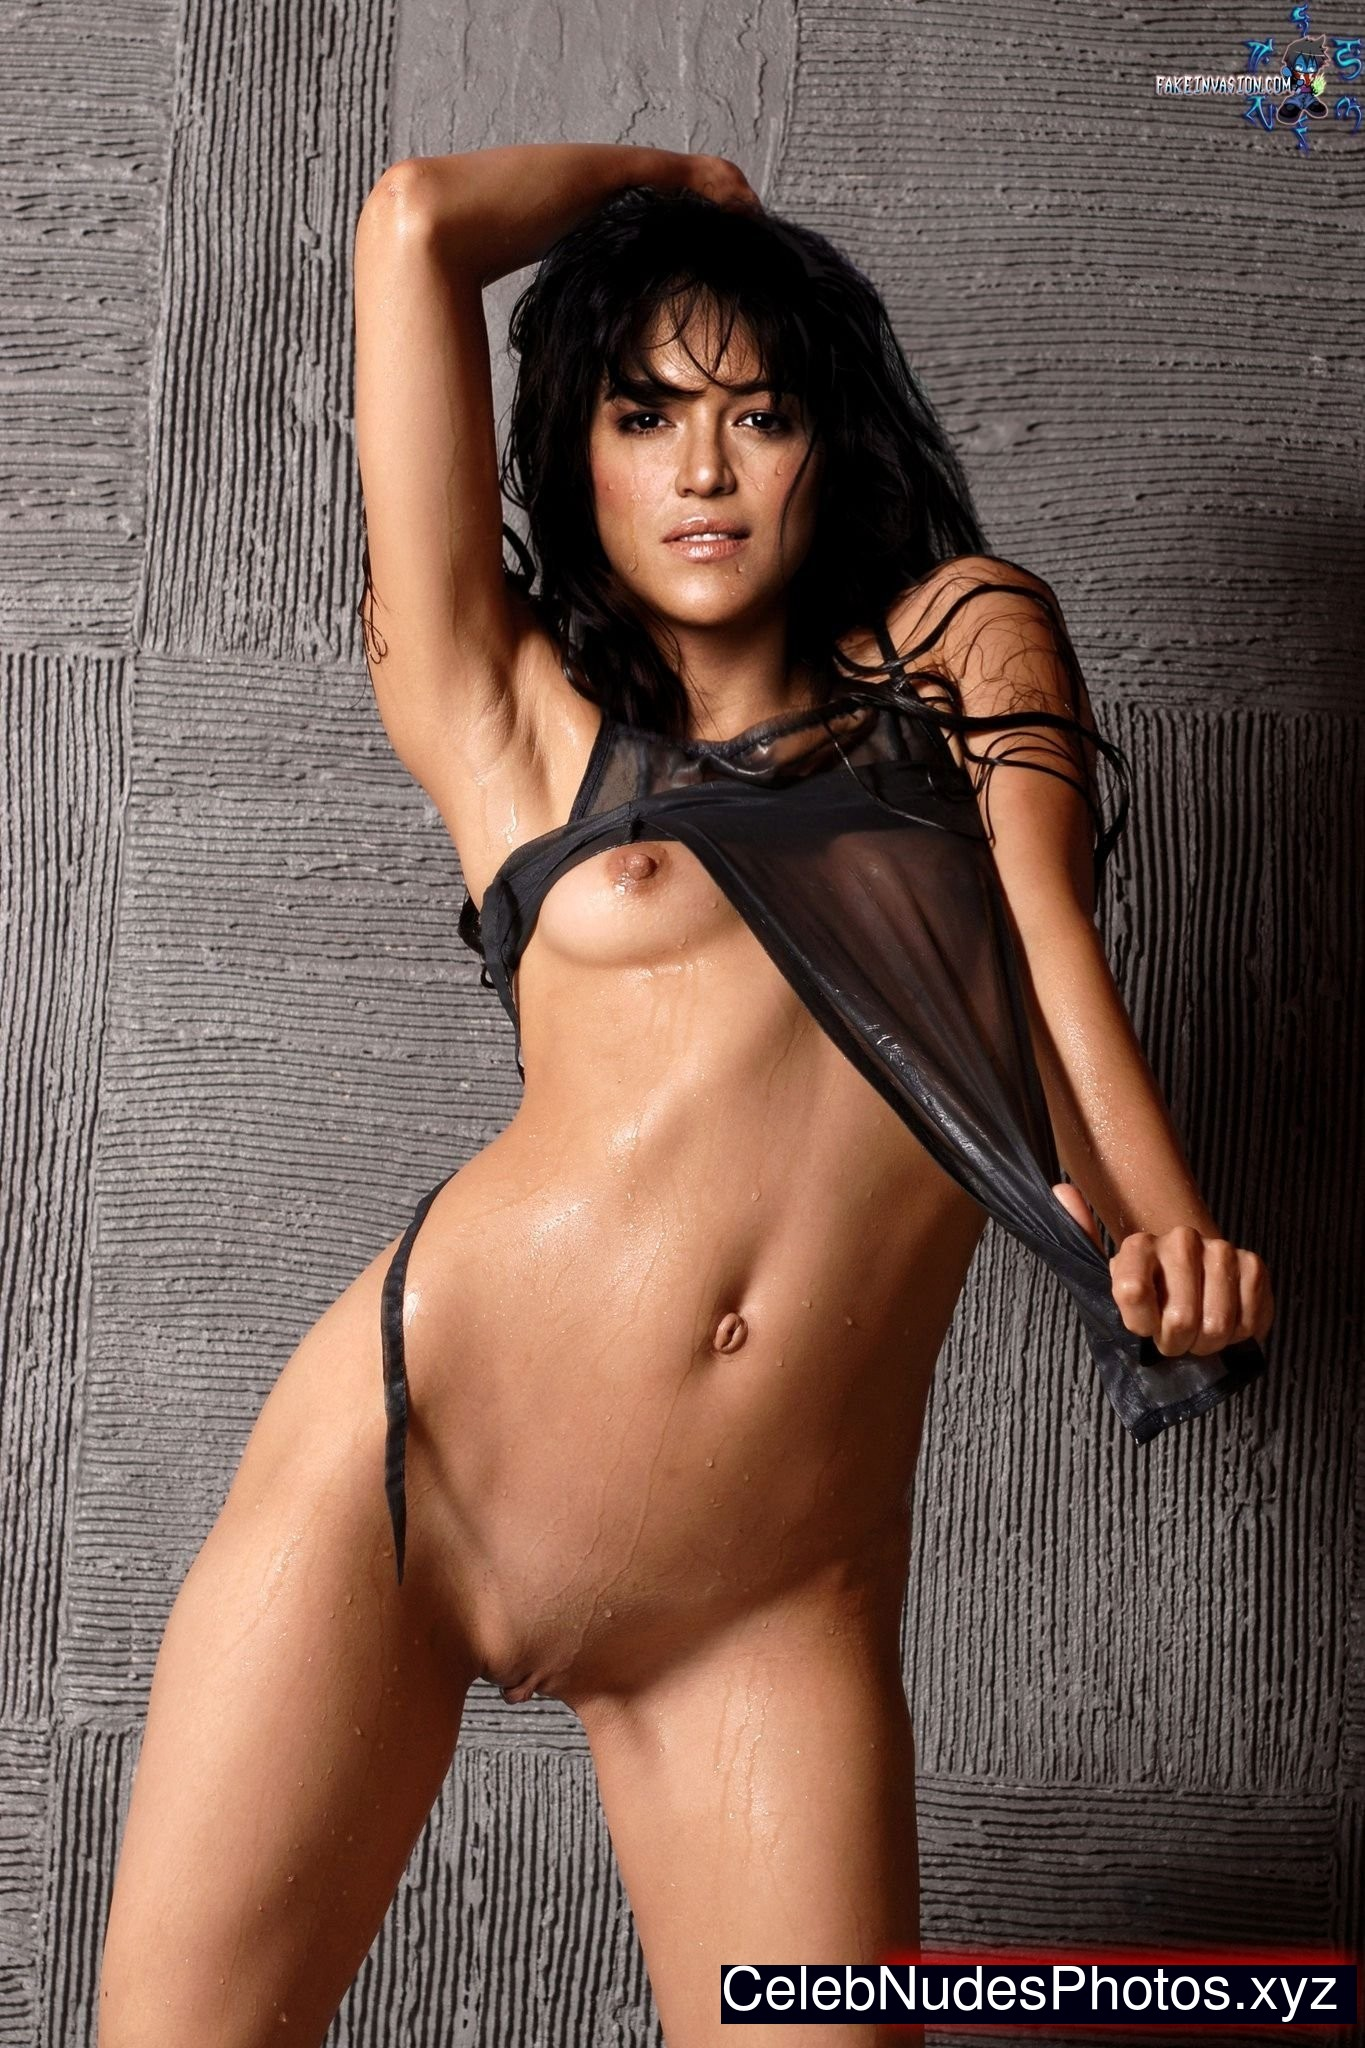 Naked Photos Of Michelle Rodriguez